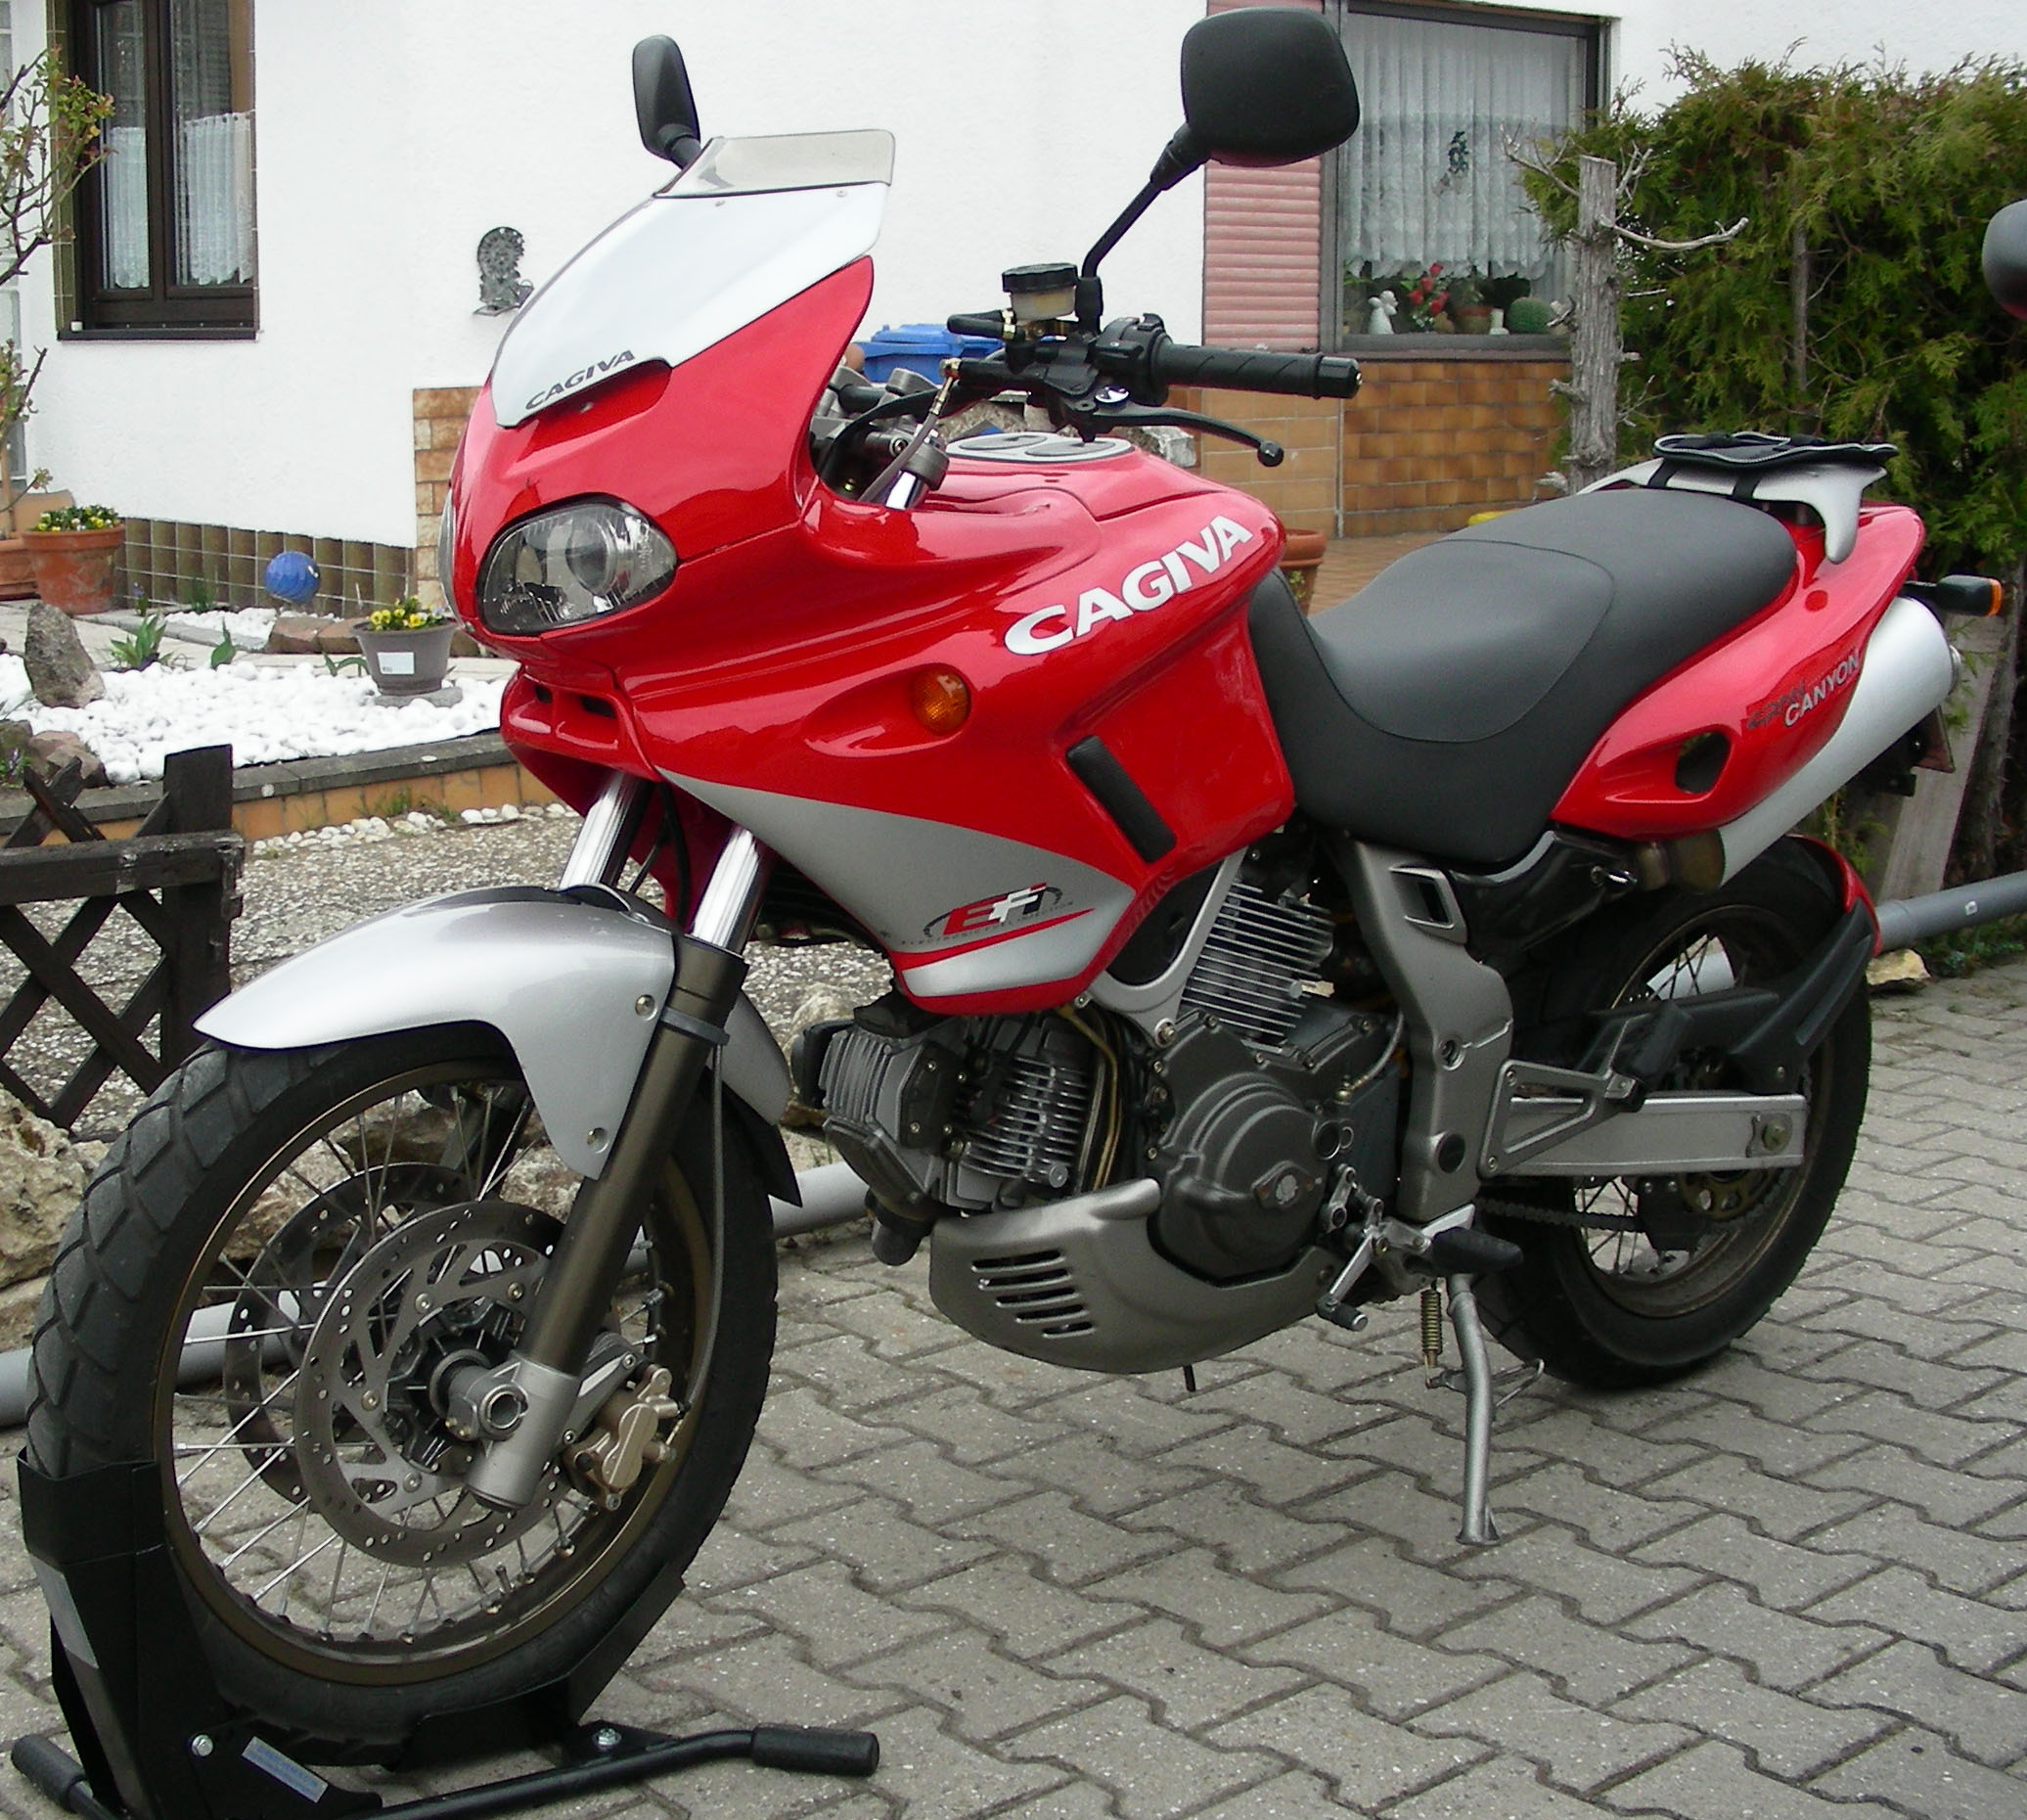 Cagiva images #67493